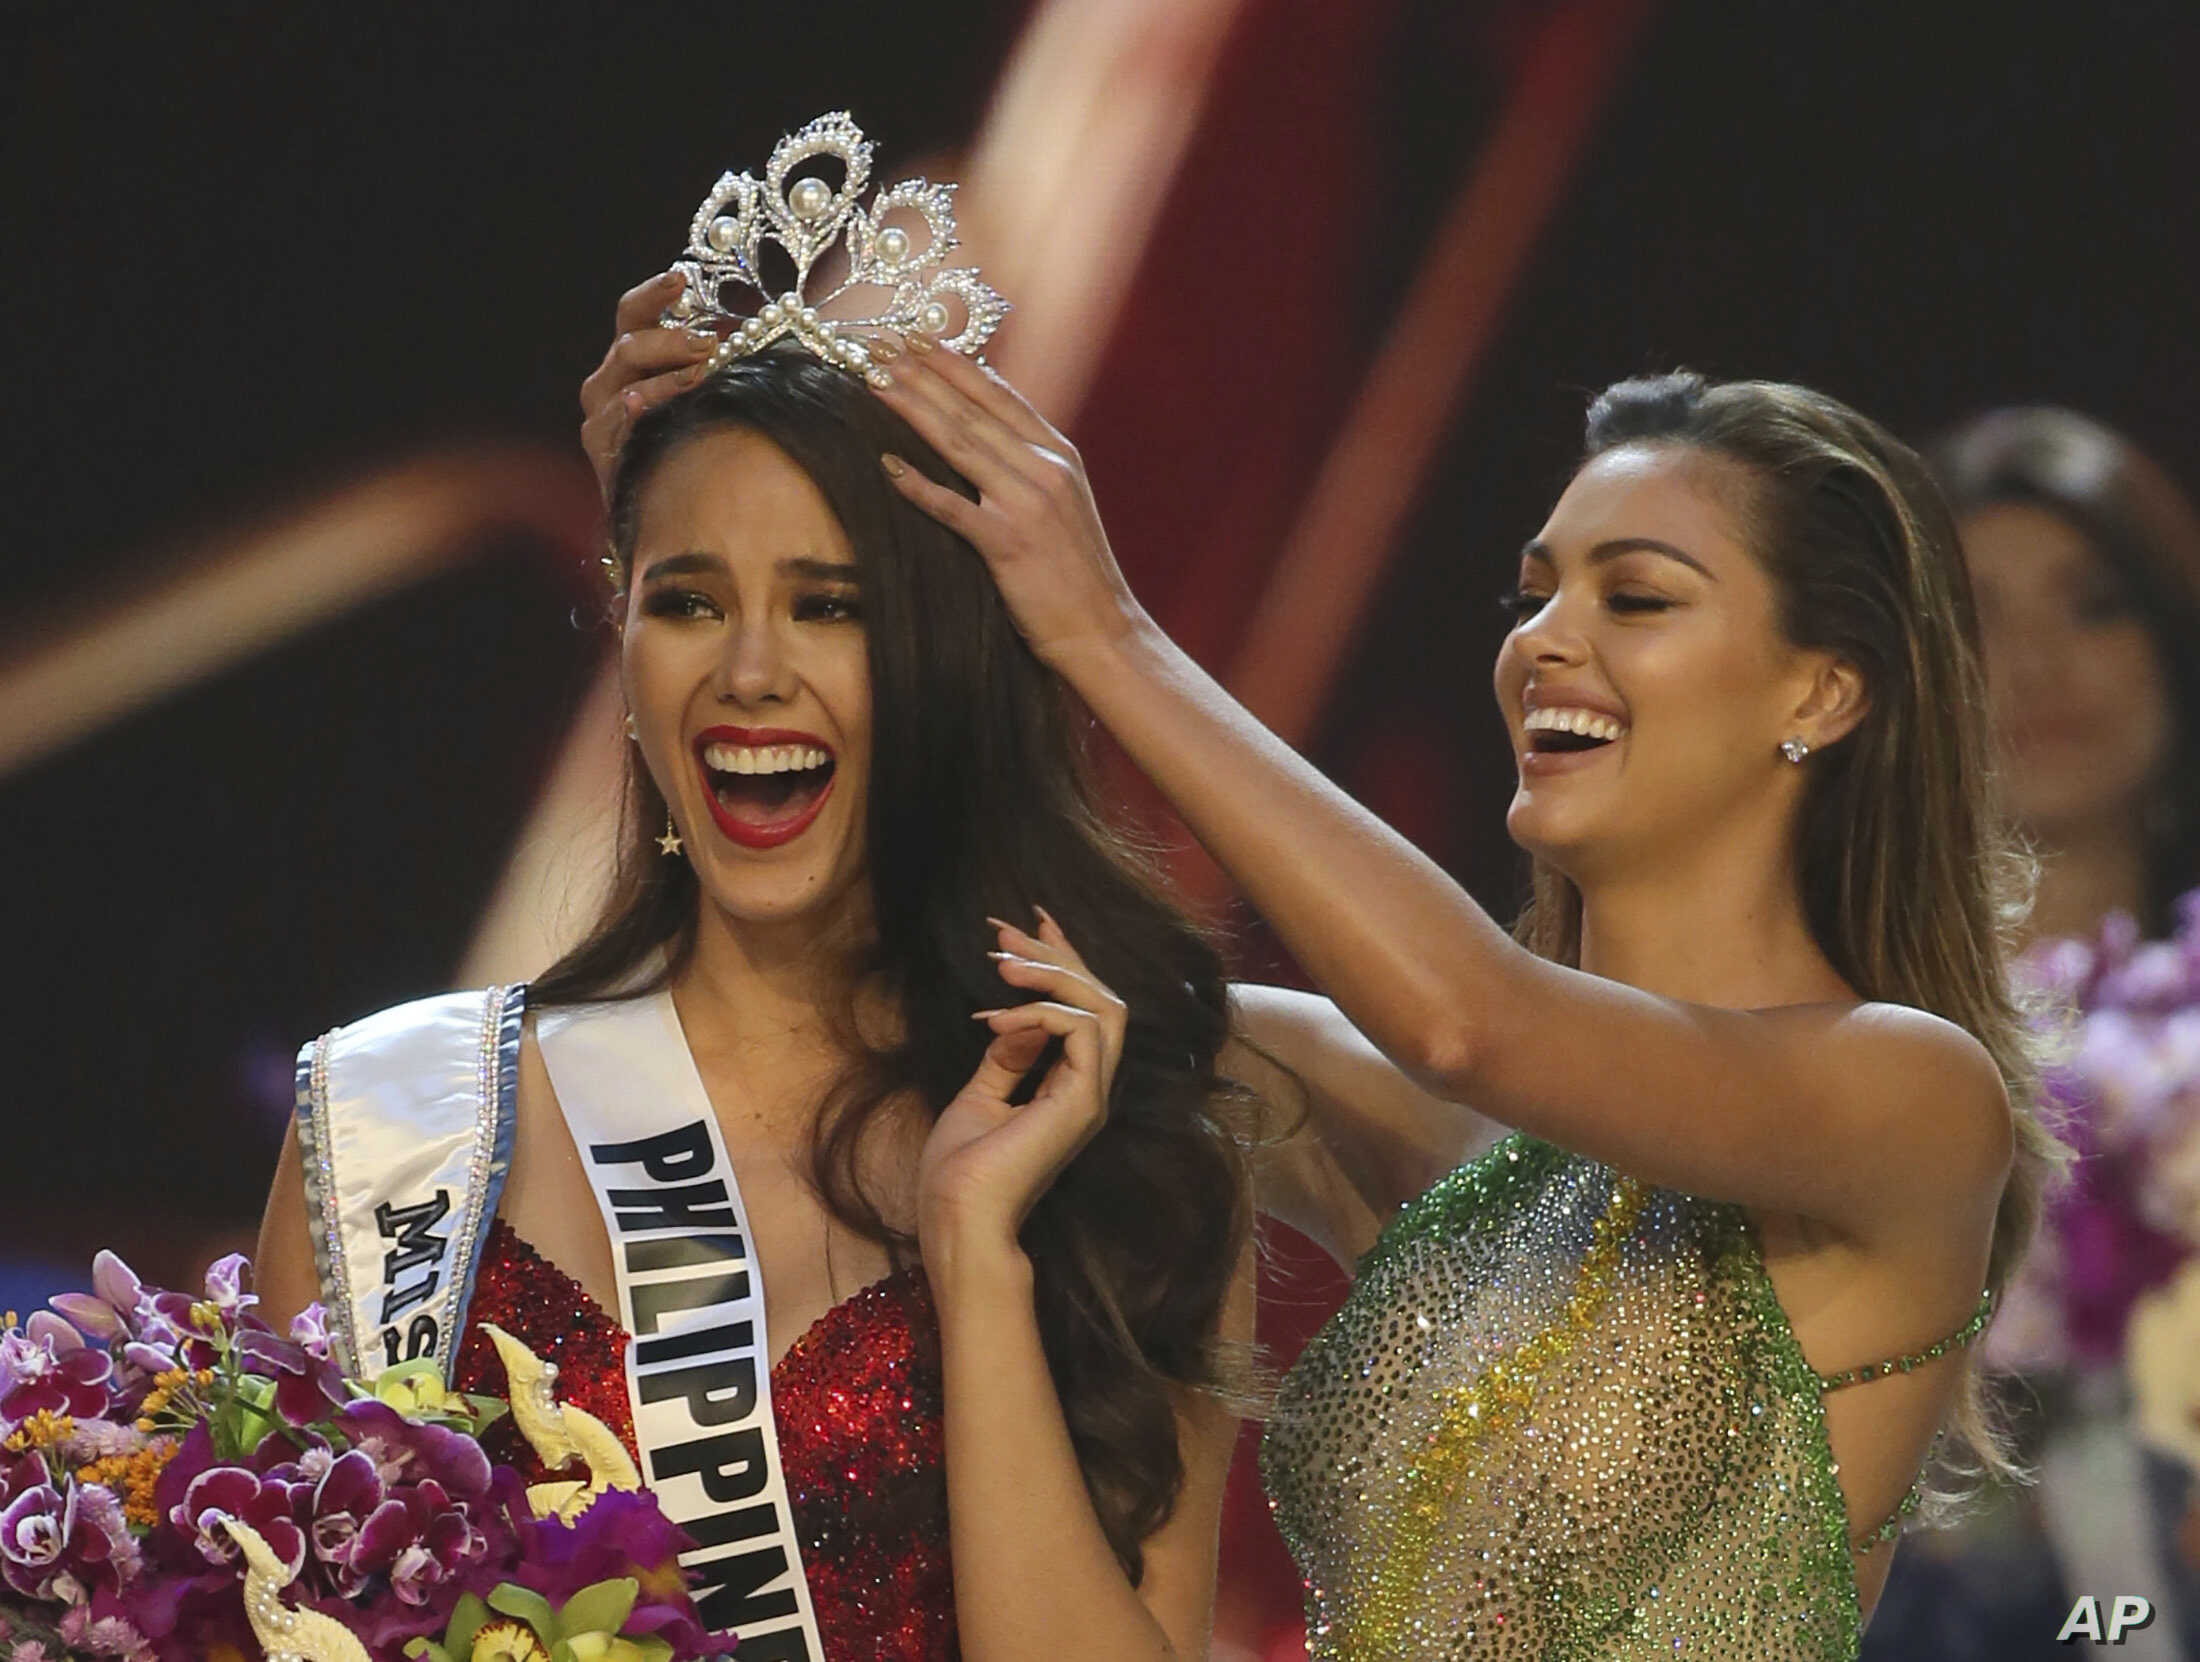 Catriona Gray of the Philippines, left, reacts as she is crowned the new Miss Universe 2018 by Miss Universe 2017 Demi-Leigh Nel-Peters during the Miss Universe competition in Bangkok, Thailand, Monday, Dec. 17, 2018.